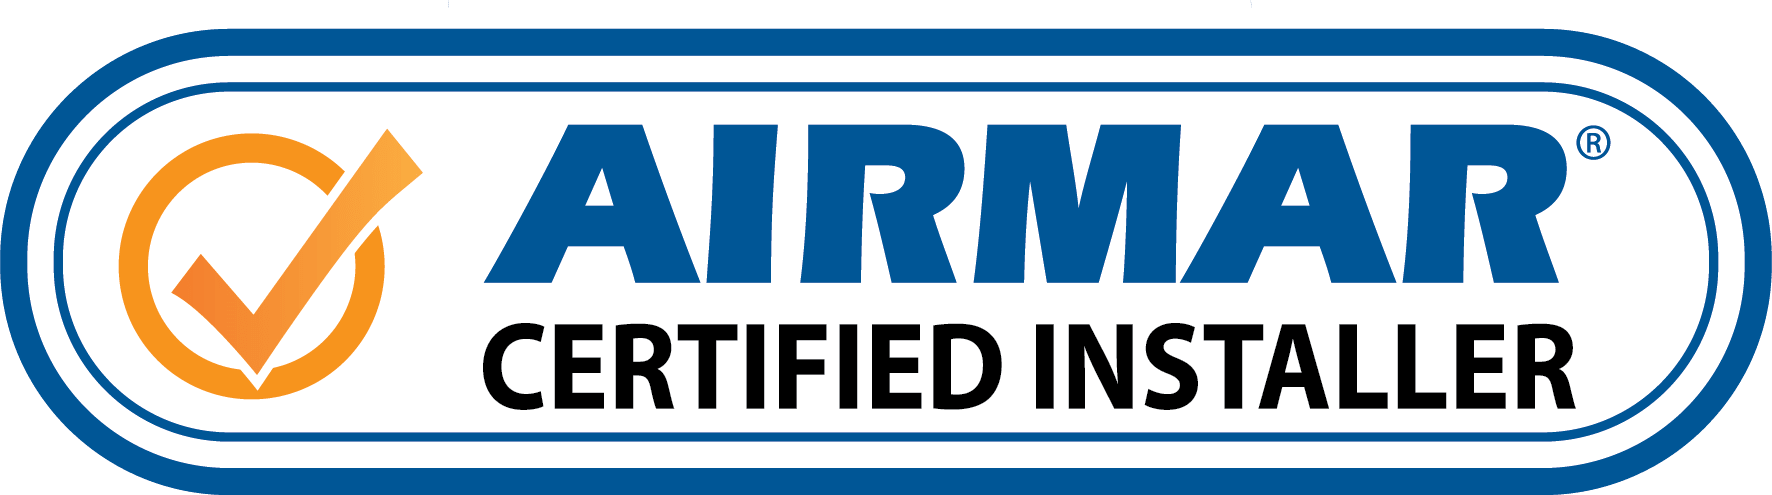 garmin 4 pin transducer wiring diagram trailer socket airmar certified installers are your best resource for determining the right application as well ensuring a quality installation